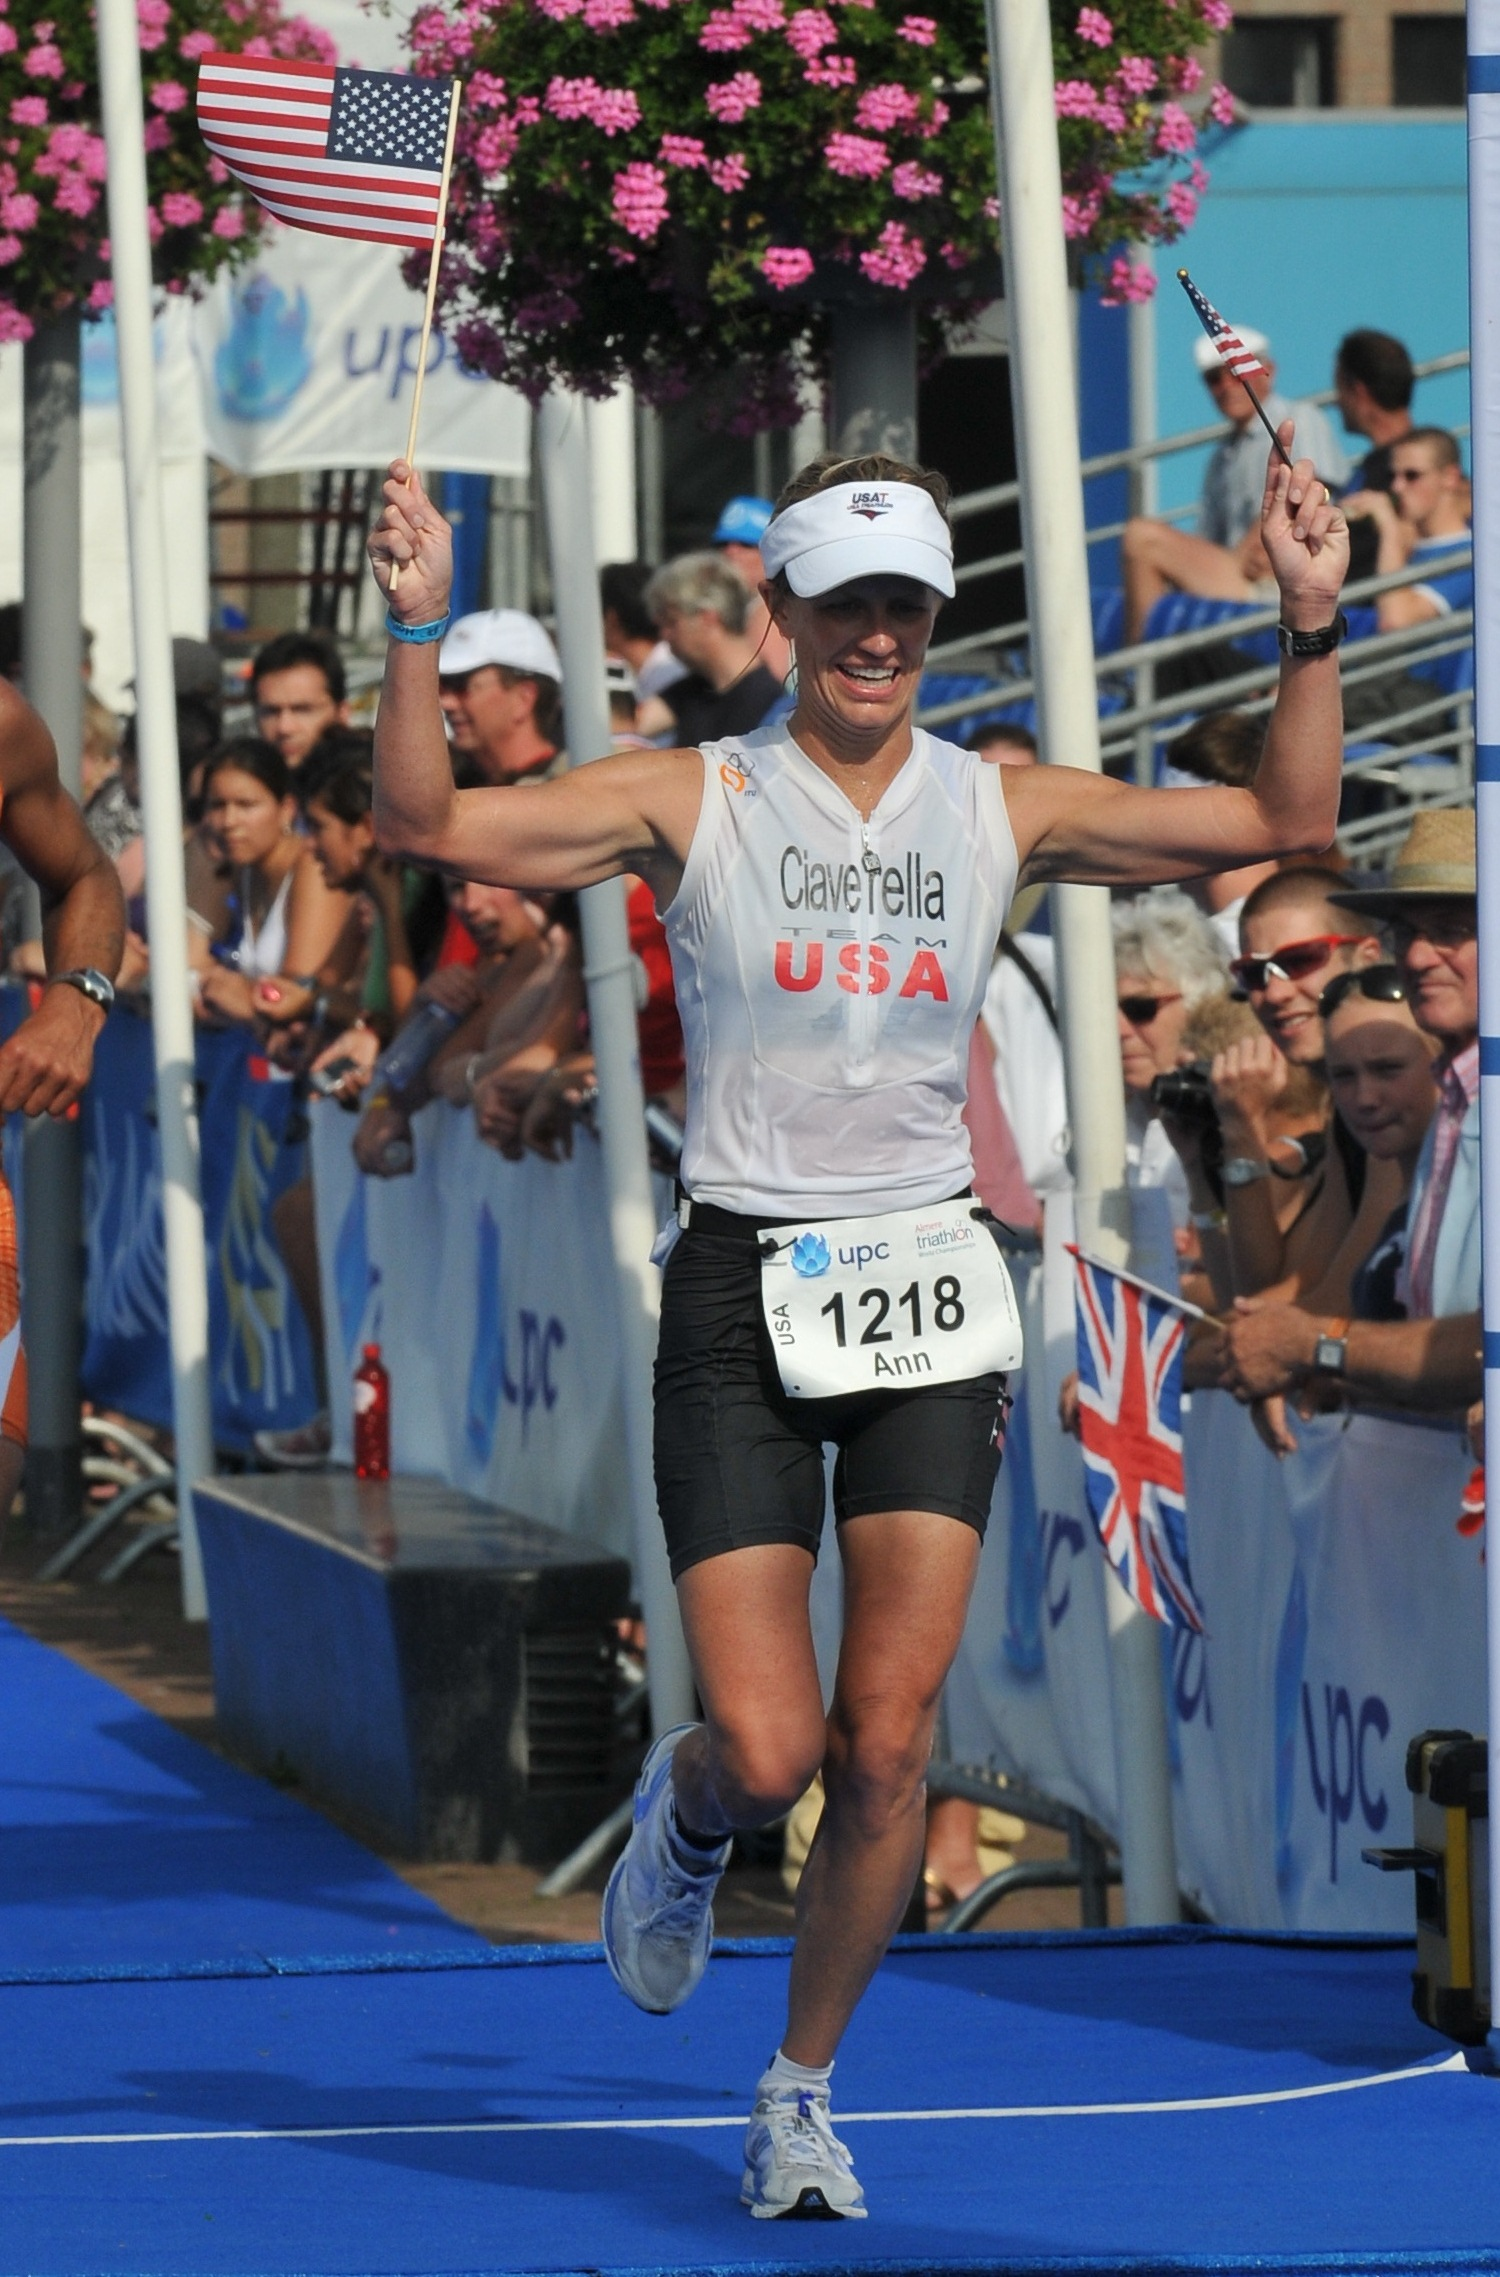 Ann finishes top amateur female, USA gold, and female amateur course record at ITU World Long Course, Amsterdam.